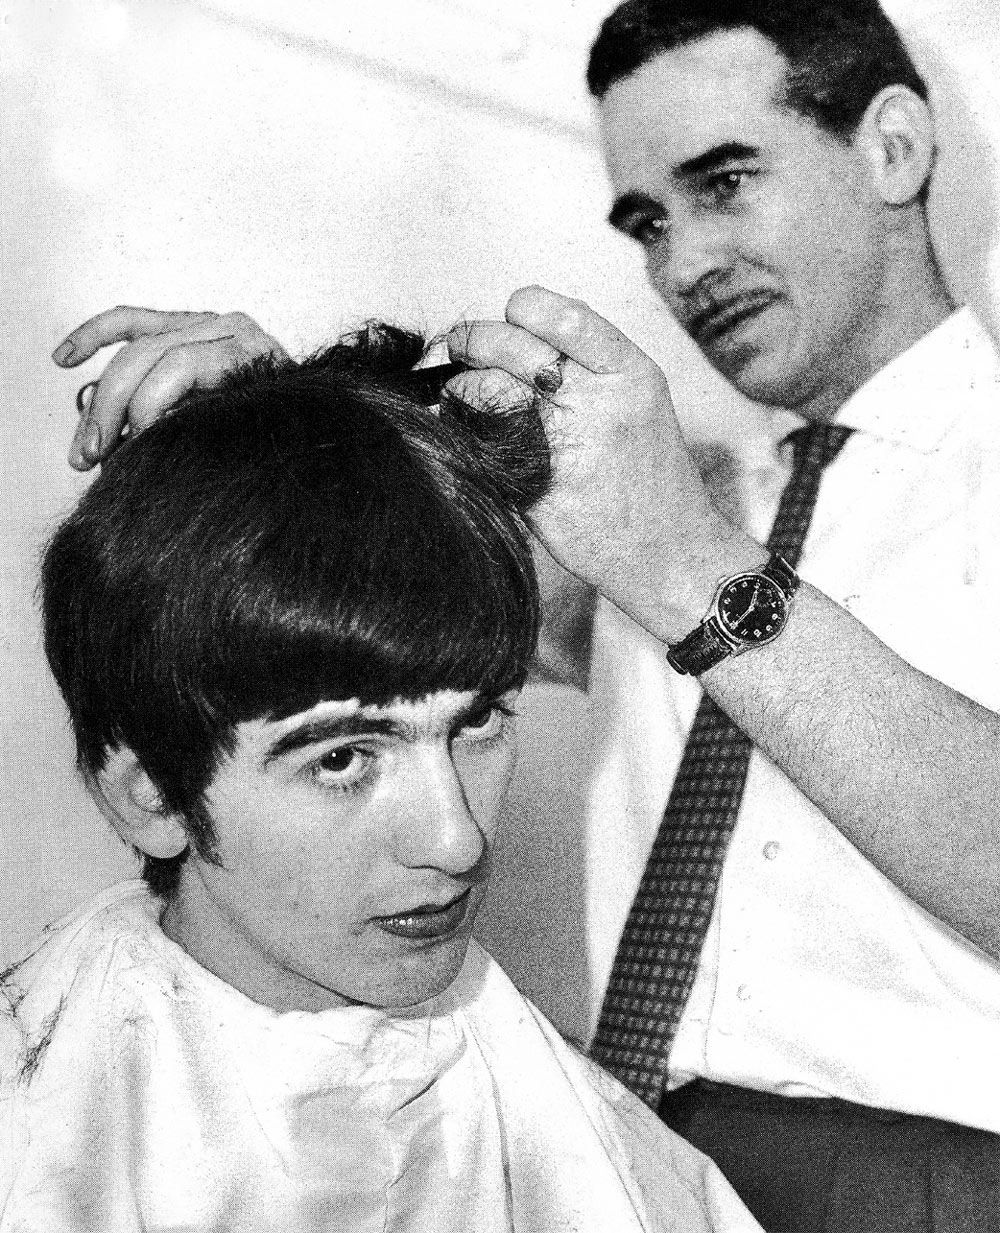 Beatles Hair Trimming George Barberia Y Peluqueria Barberia Barberos